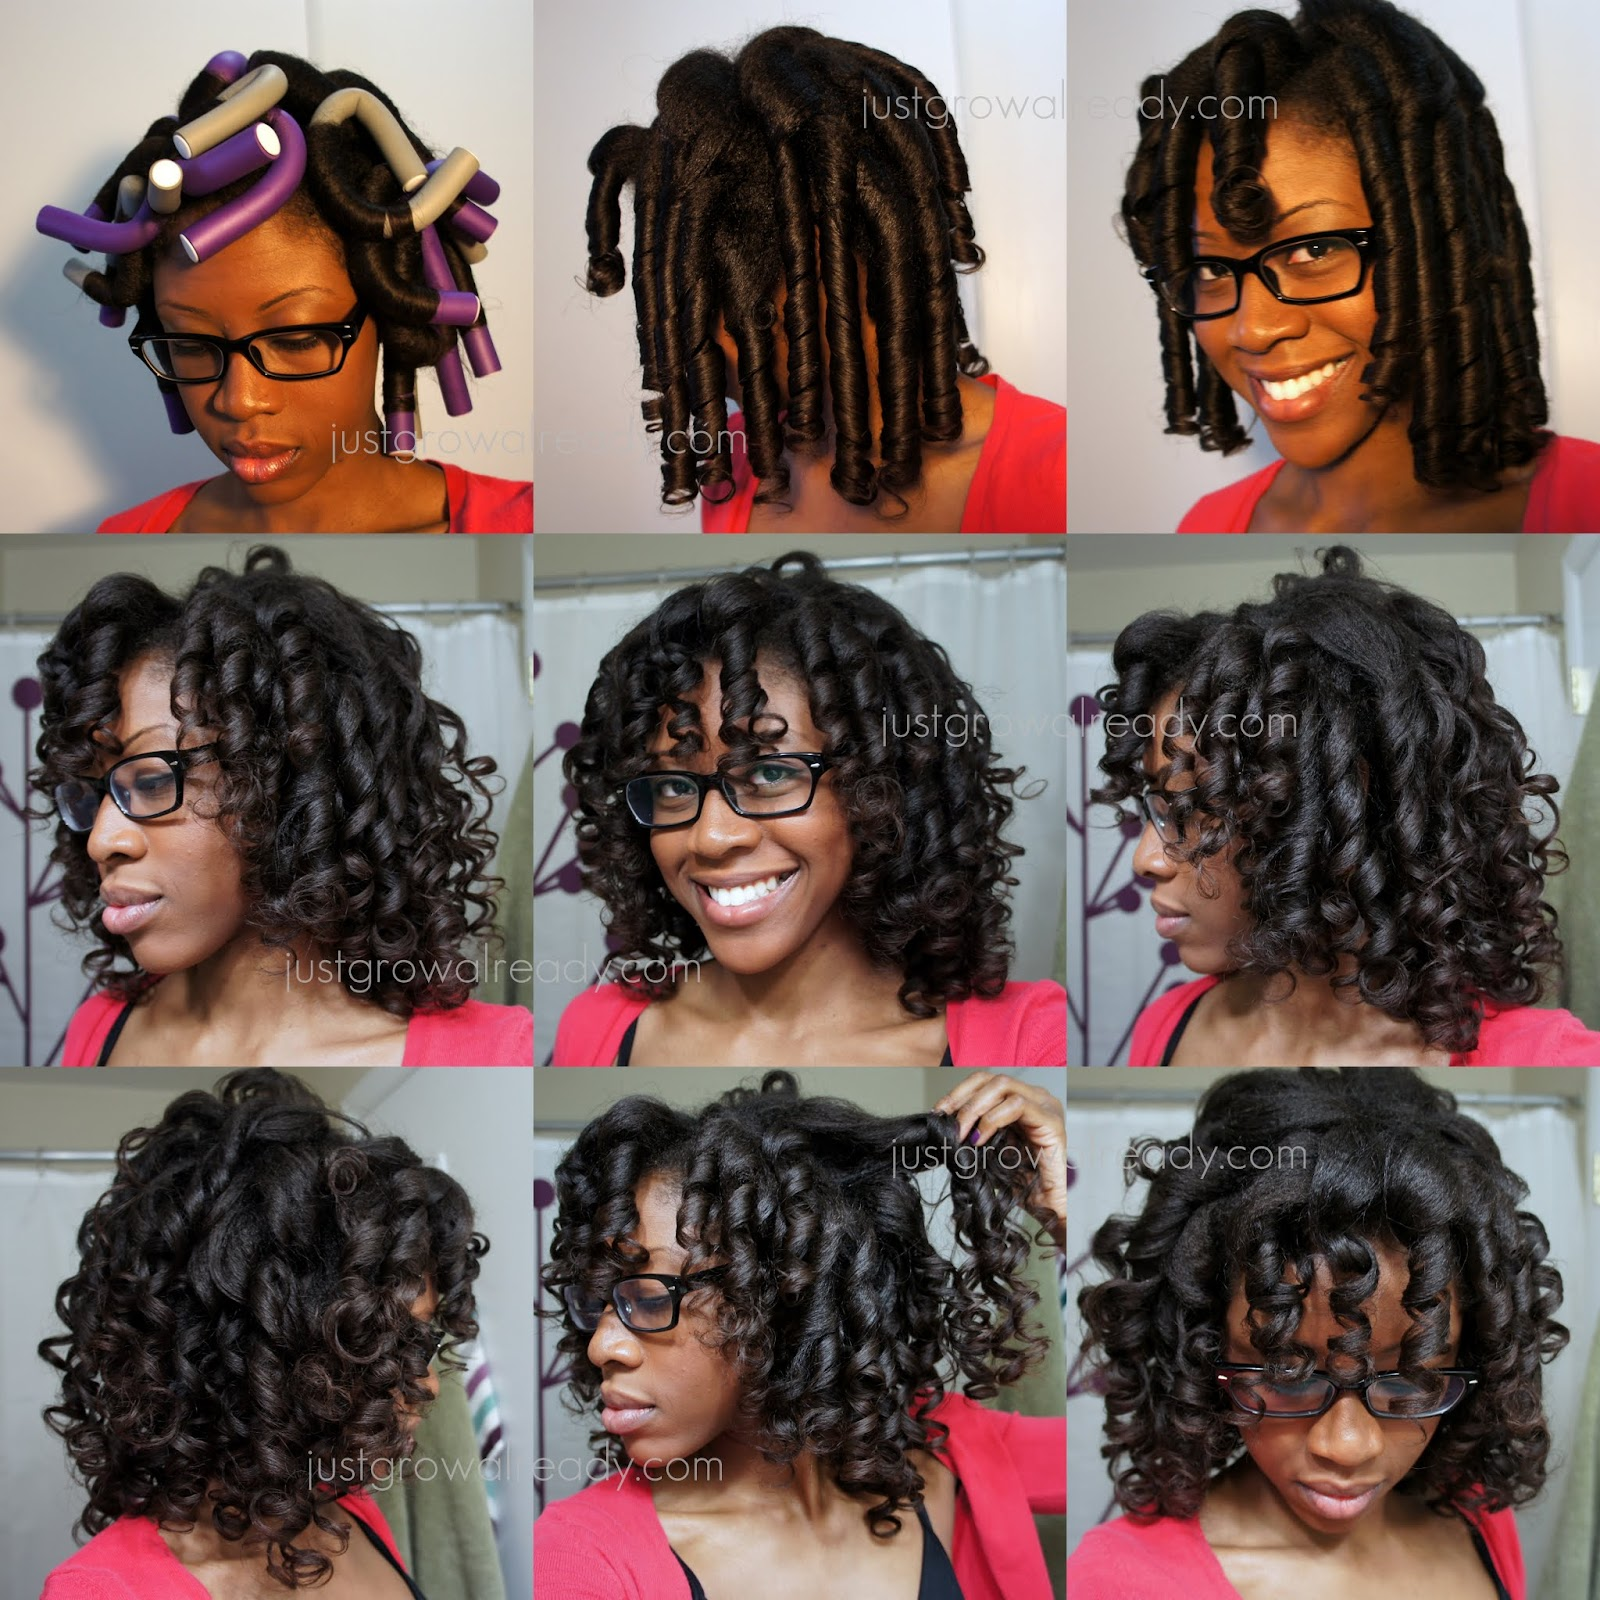 Flexi Rod Set – Just Grow Already!